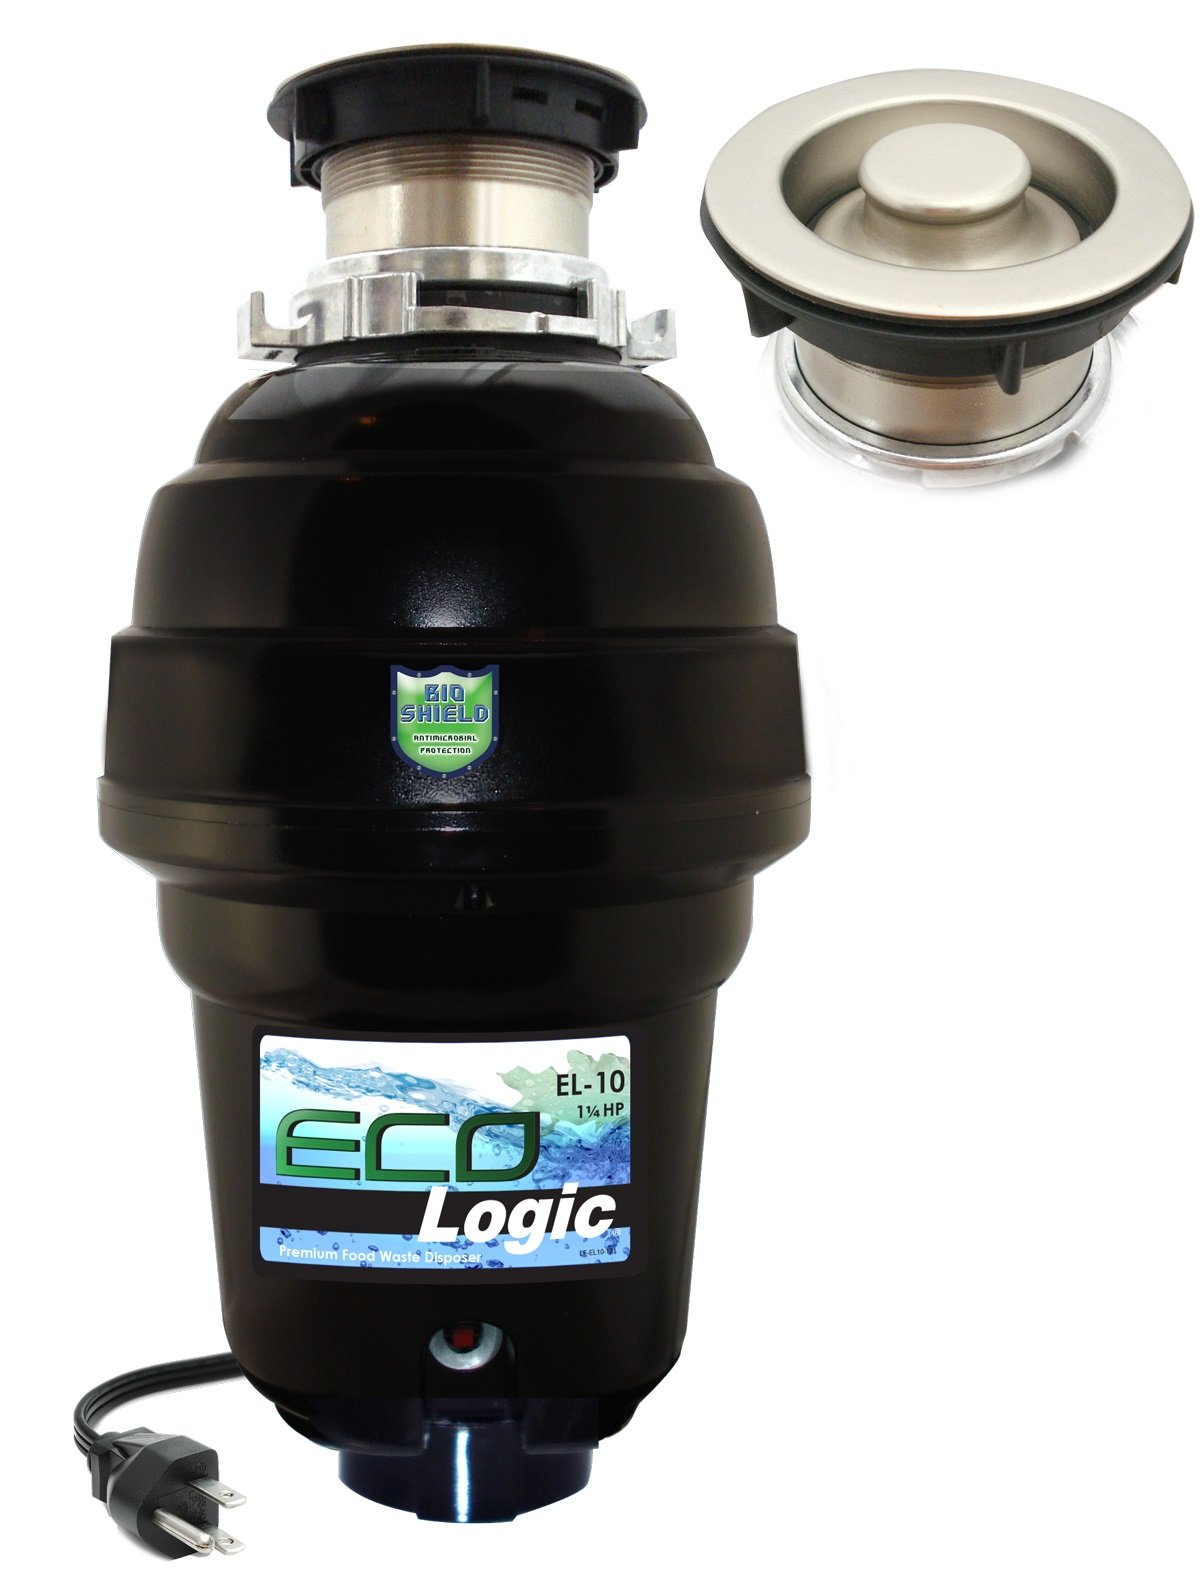 Eco Logic EL-10-DS-BN 10 Designer Series Food Waste Disposer with Brushed Nickel Sink Flange, 1-1/4 HP by Eco Logic